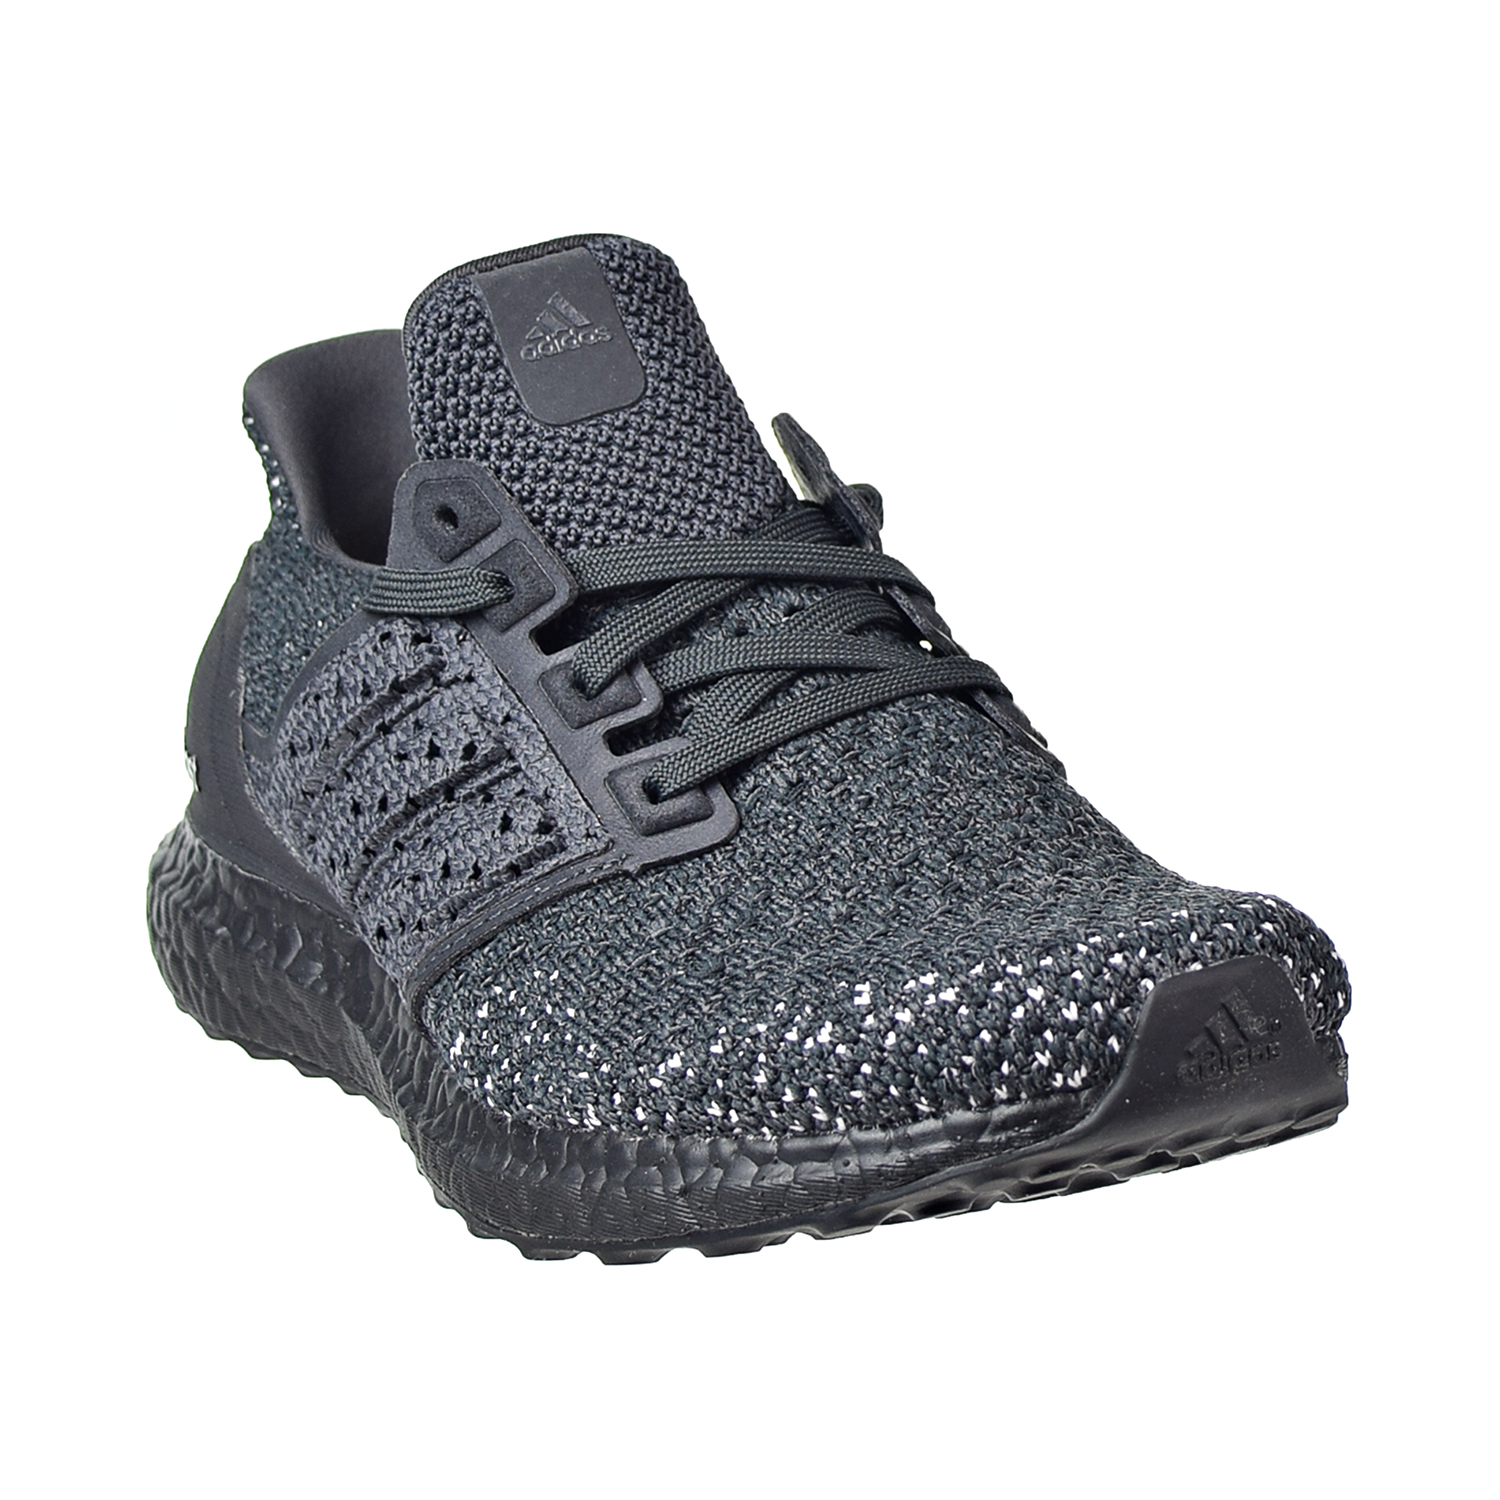 8796a0e01 Adidas Ultra Boost Clima Men s Running Shoes Carbon Carbon Orchid Tint  cq0022